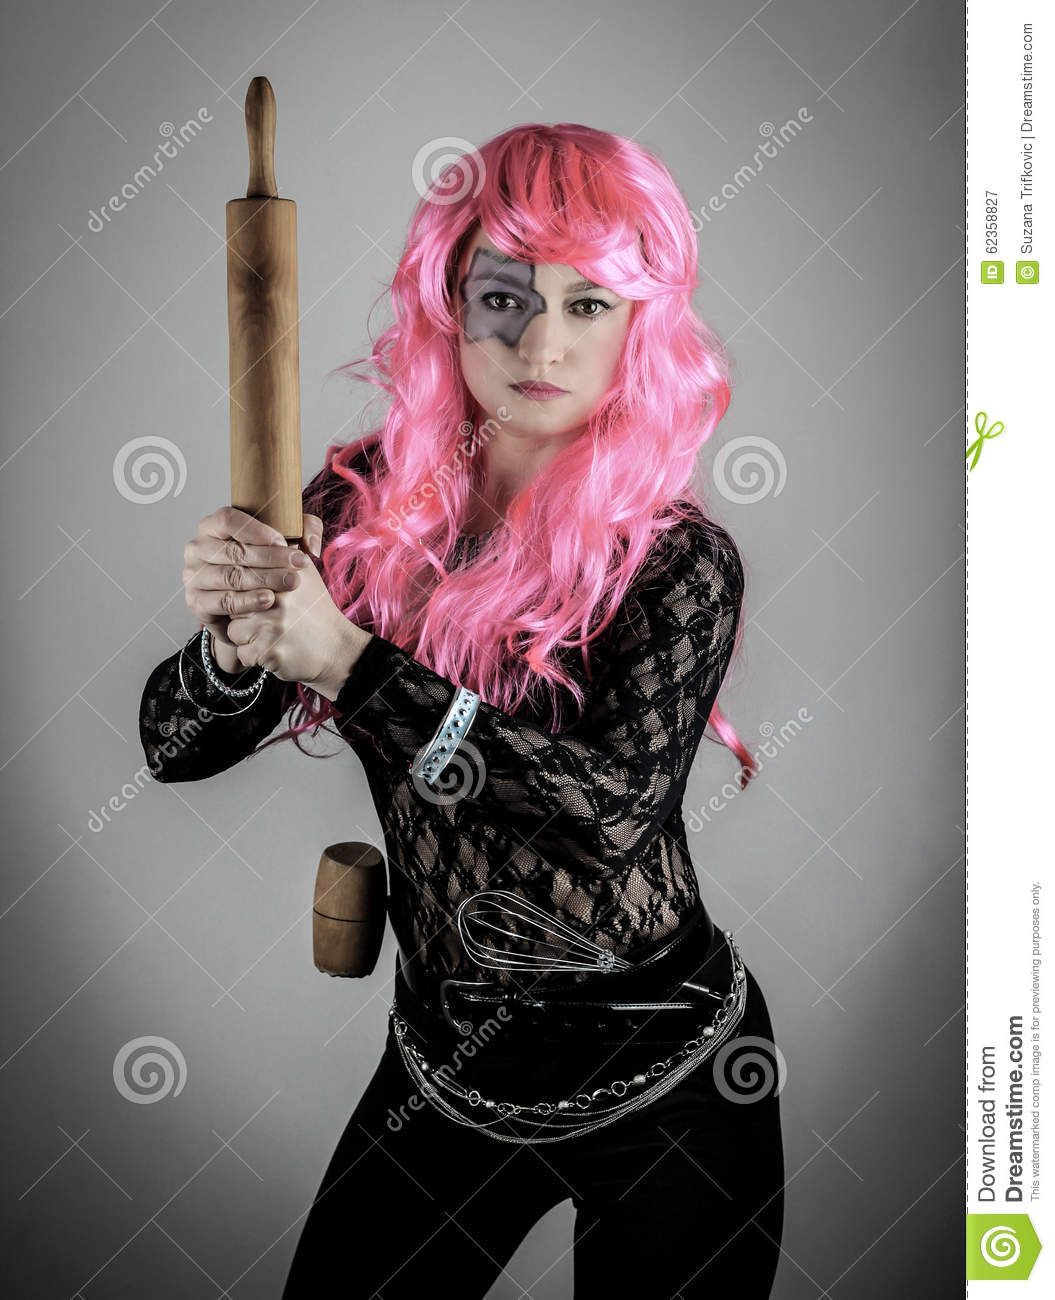 Pink Hair Superhero Stock Photo - Image: 62358827